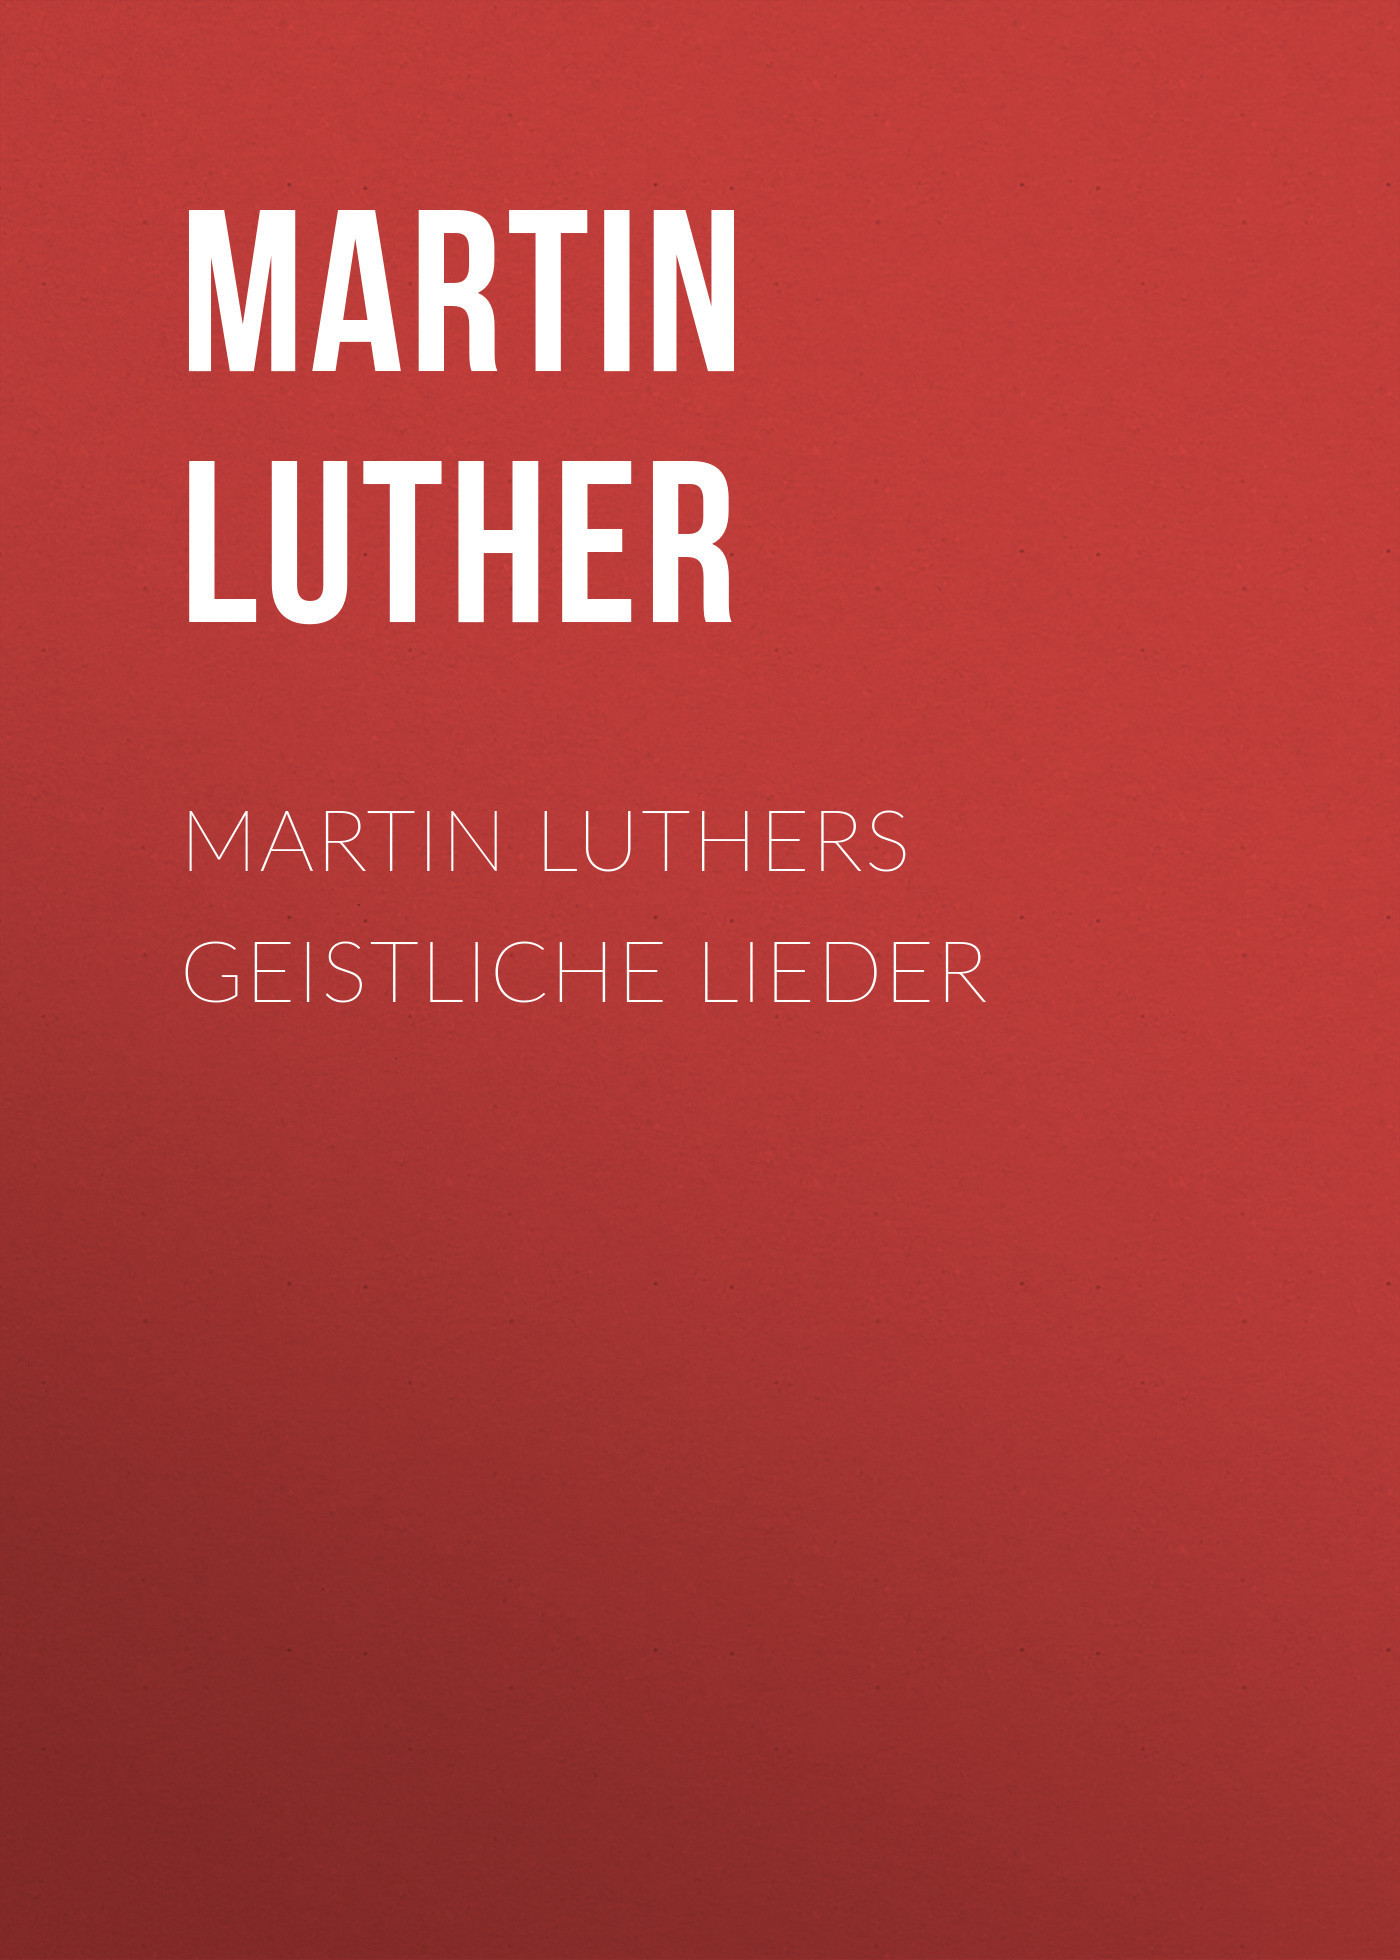 Martin Luther Martin Luthers Geistliche Lieder лютер вэндросс luther vandross the ultimate luther vandross